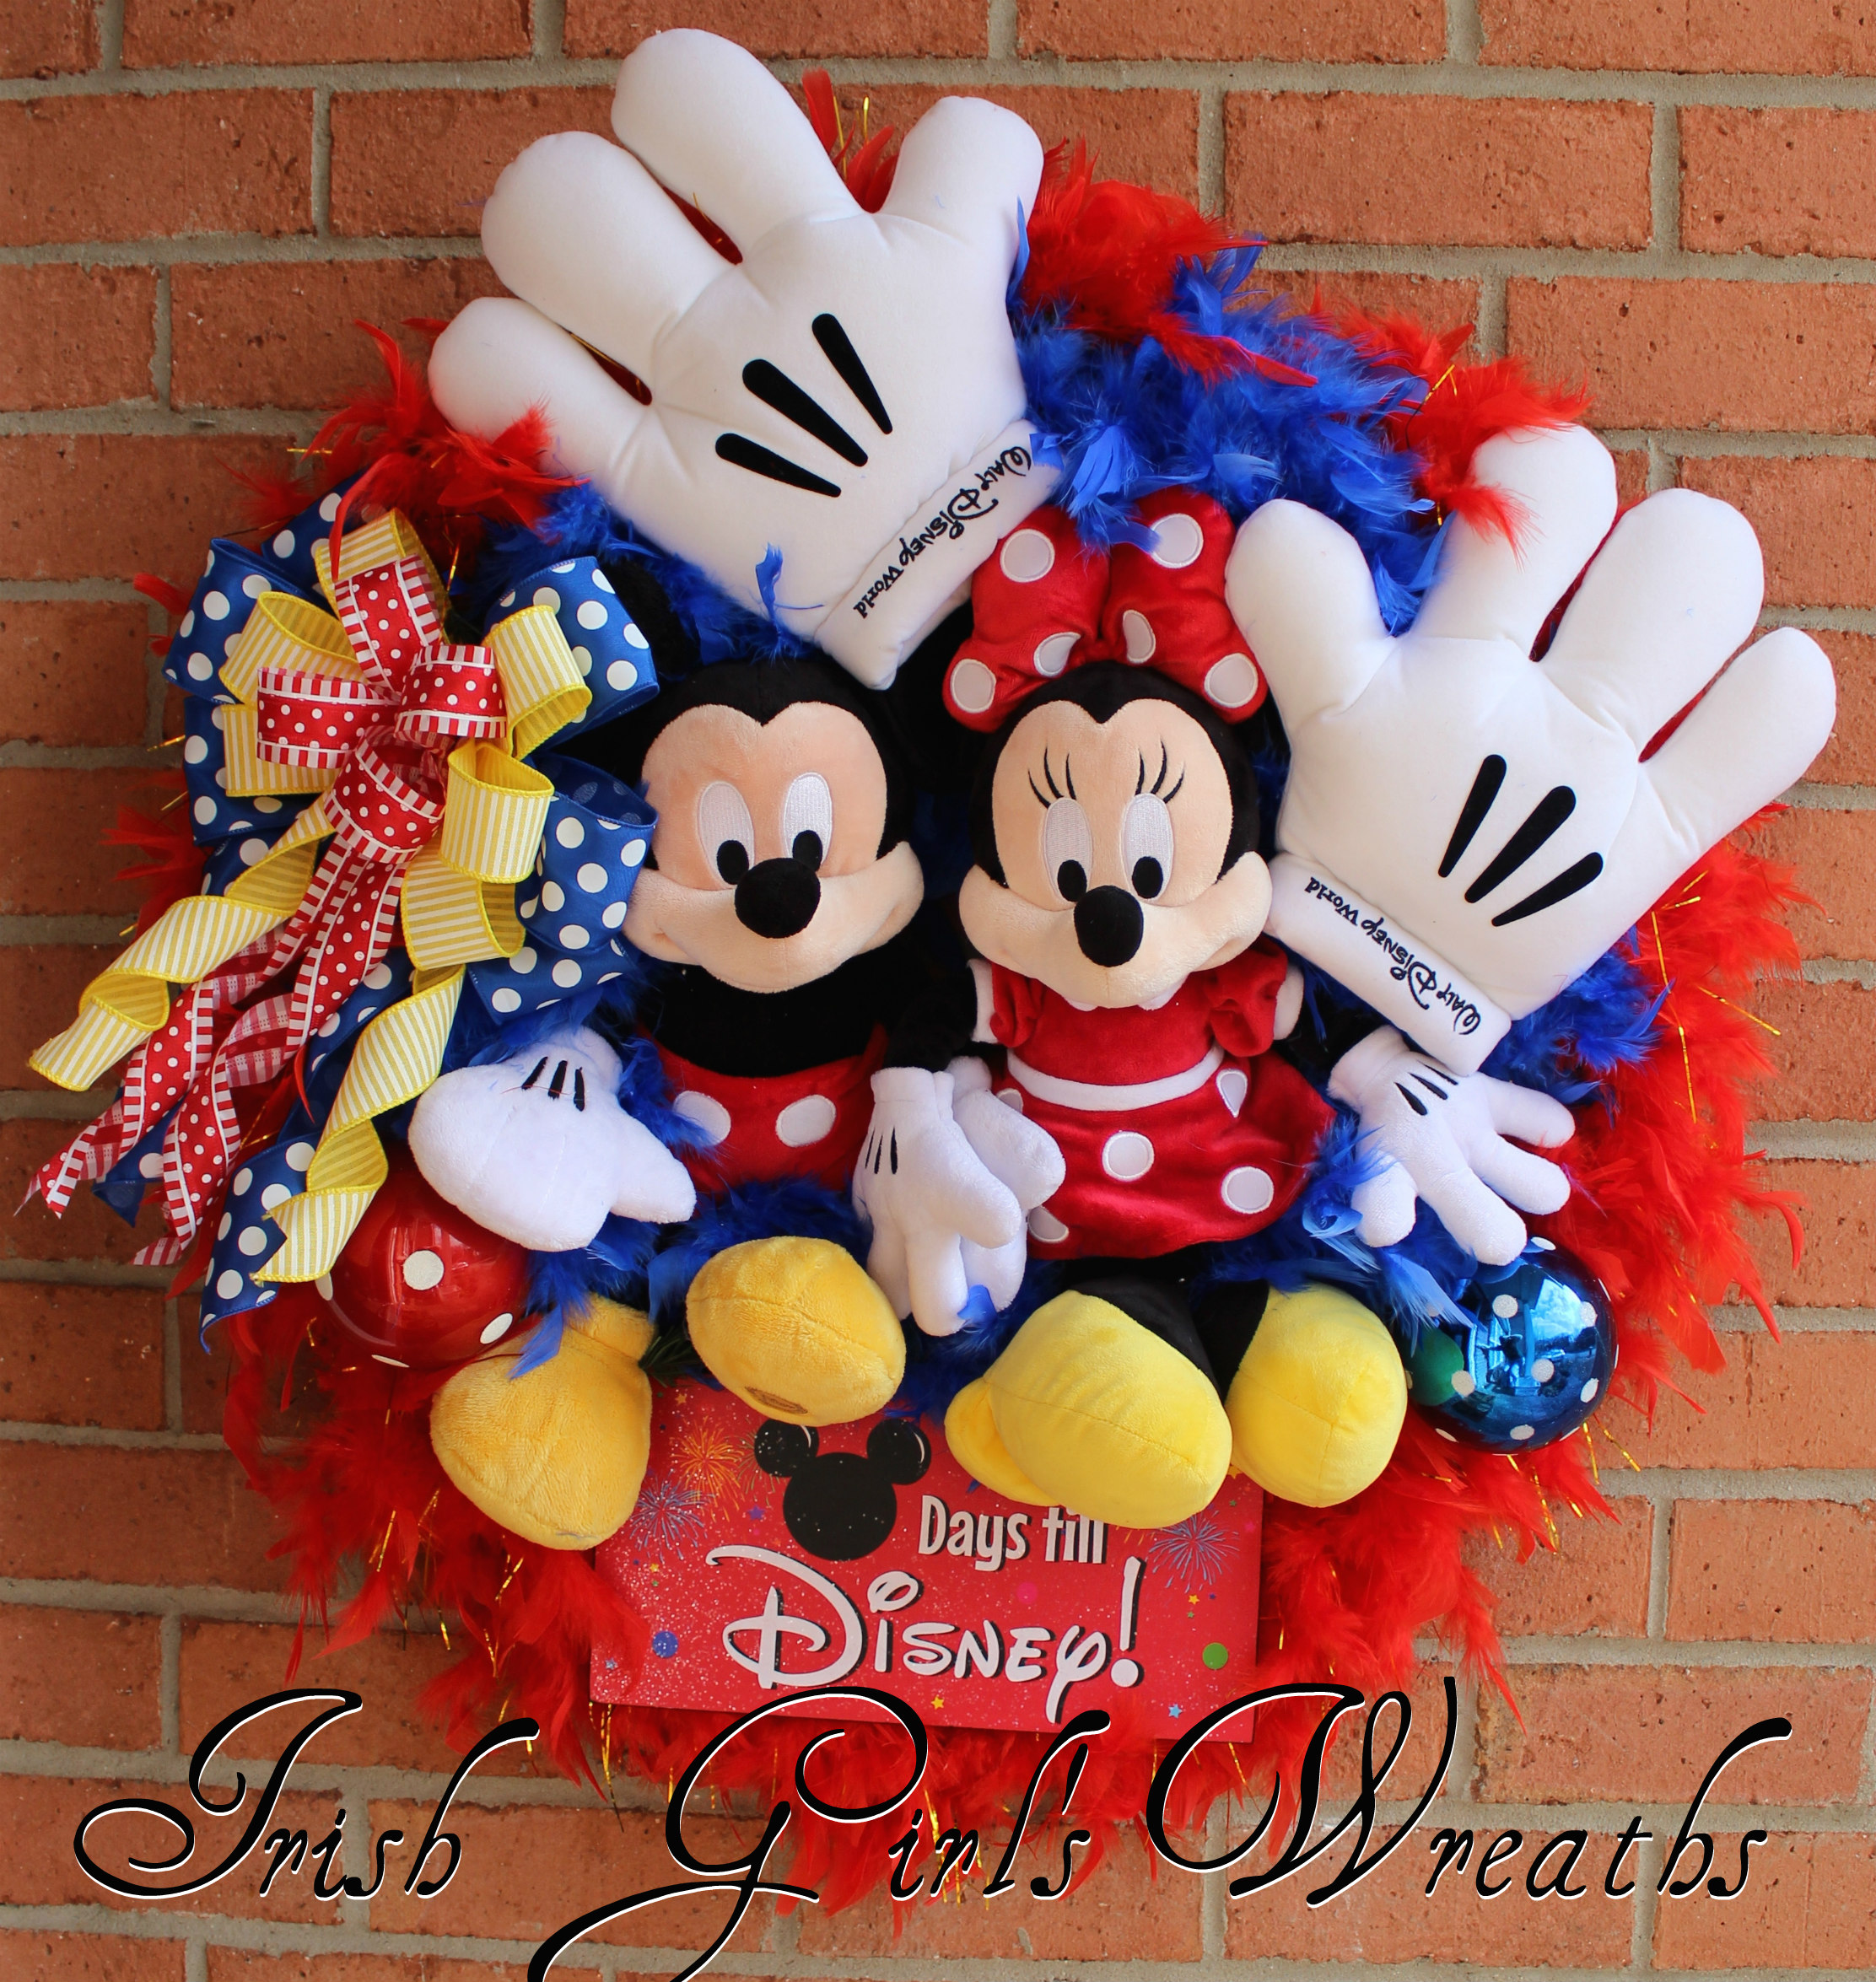 Countdown to Disney Mickey and Minnie Mouse Wreath, Custom for Dolores